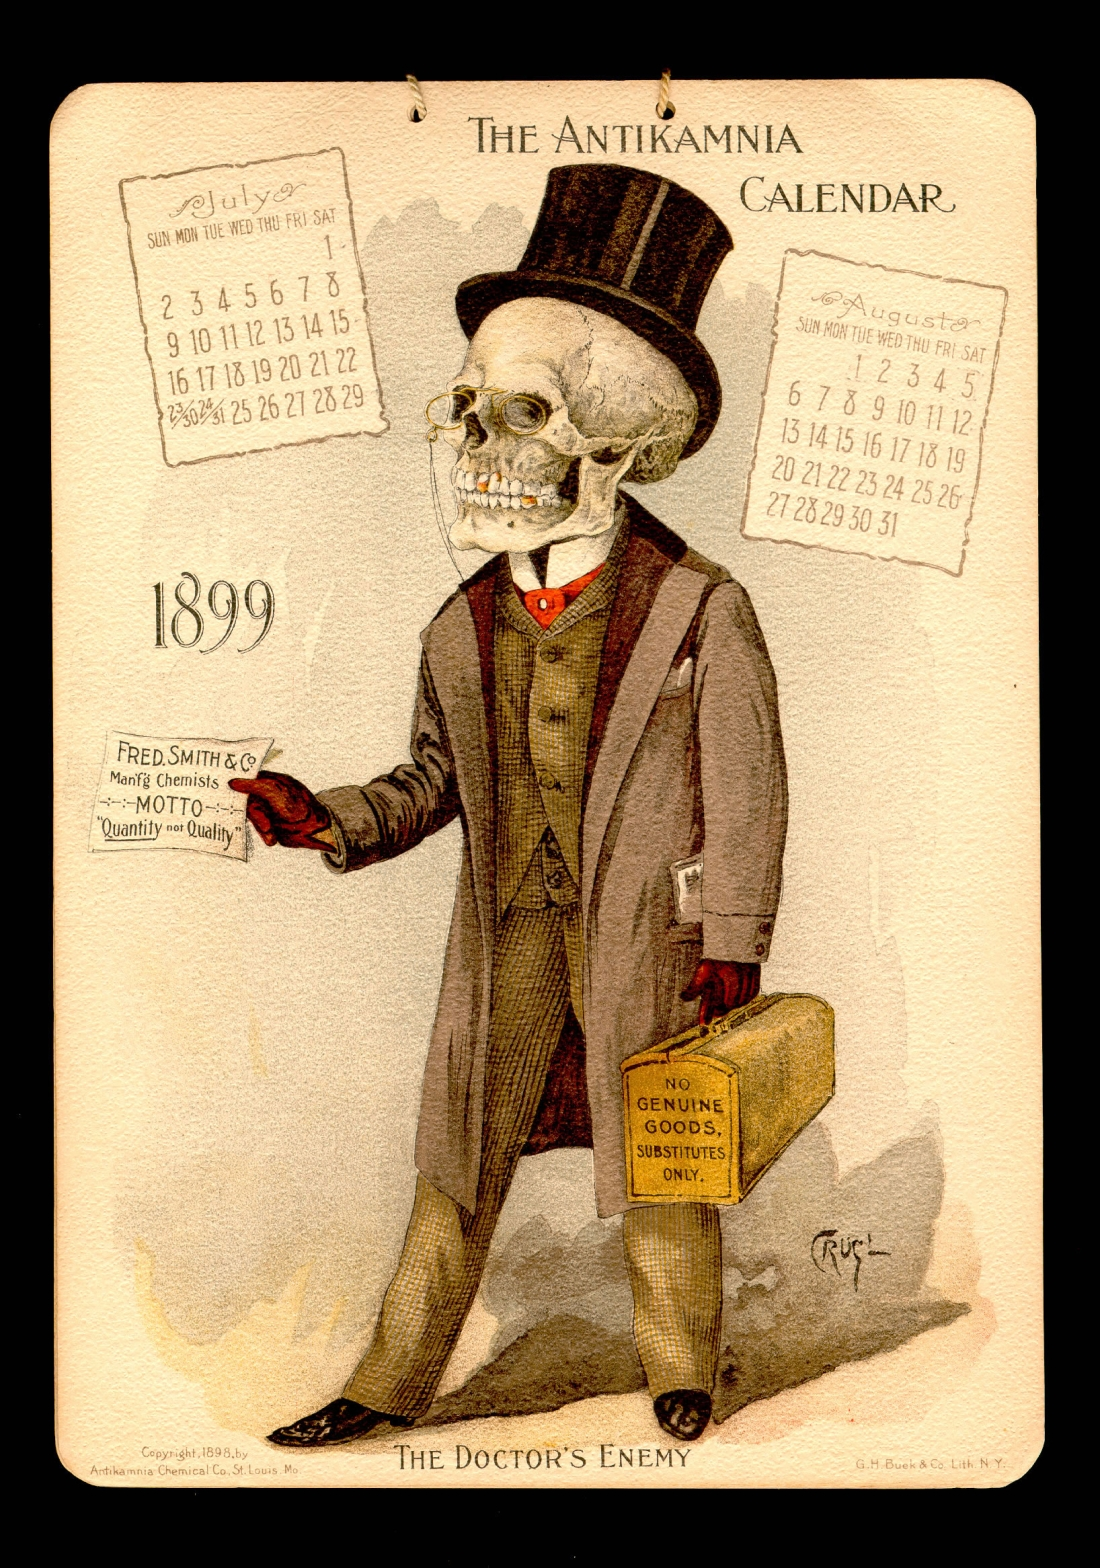 1899 antikamnia medical calendar